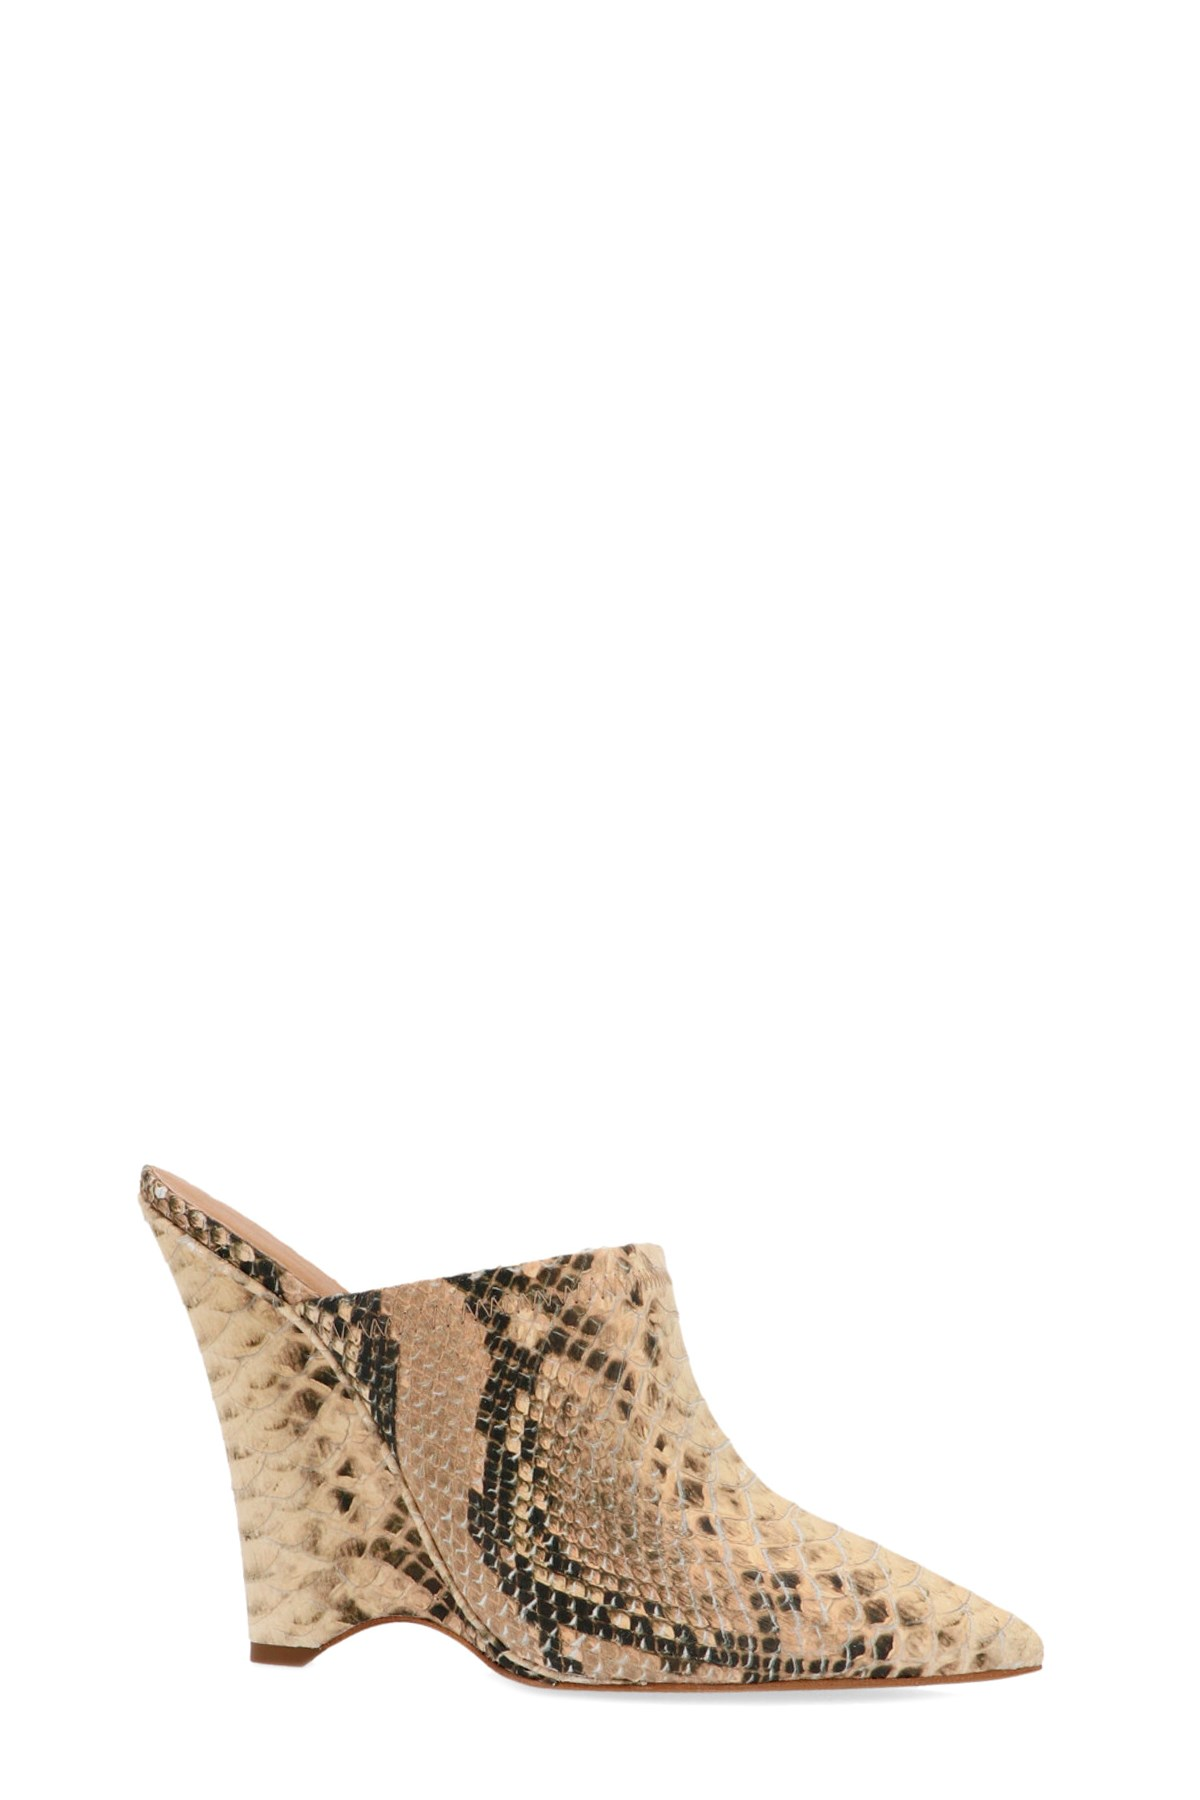 a03cd28640 yeezy Animalier print mules available on julian-fashion.com - 89251